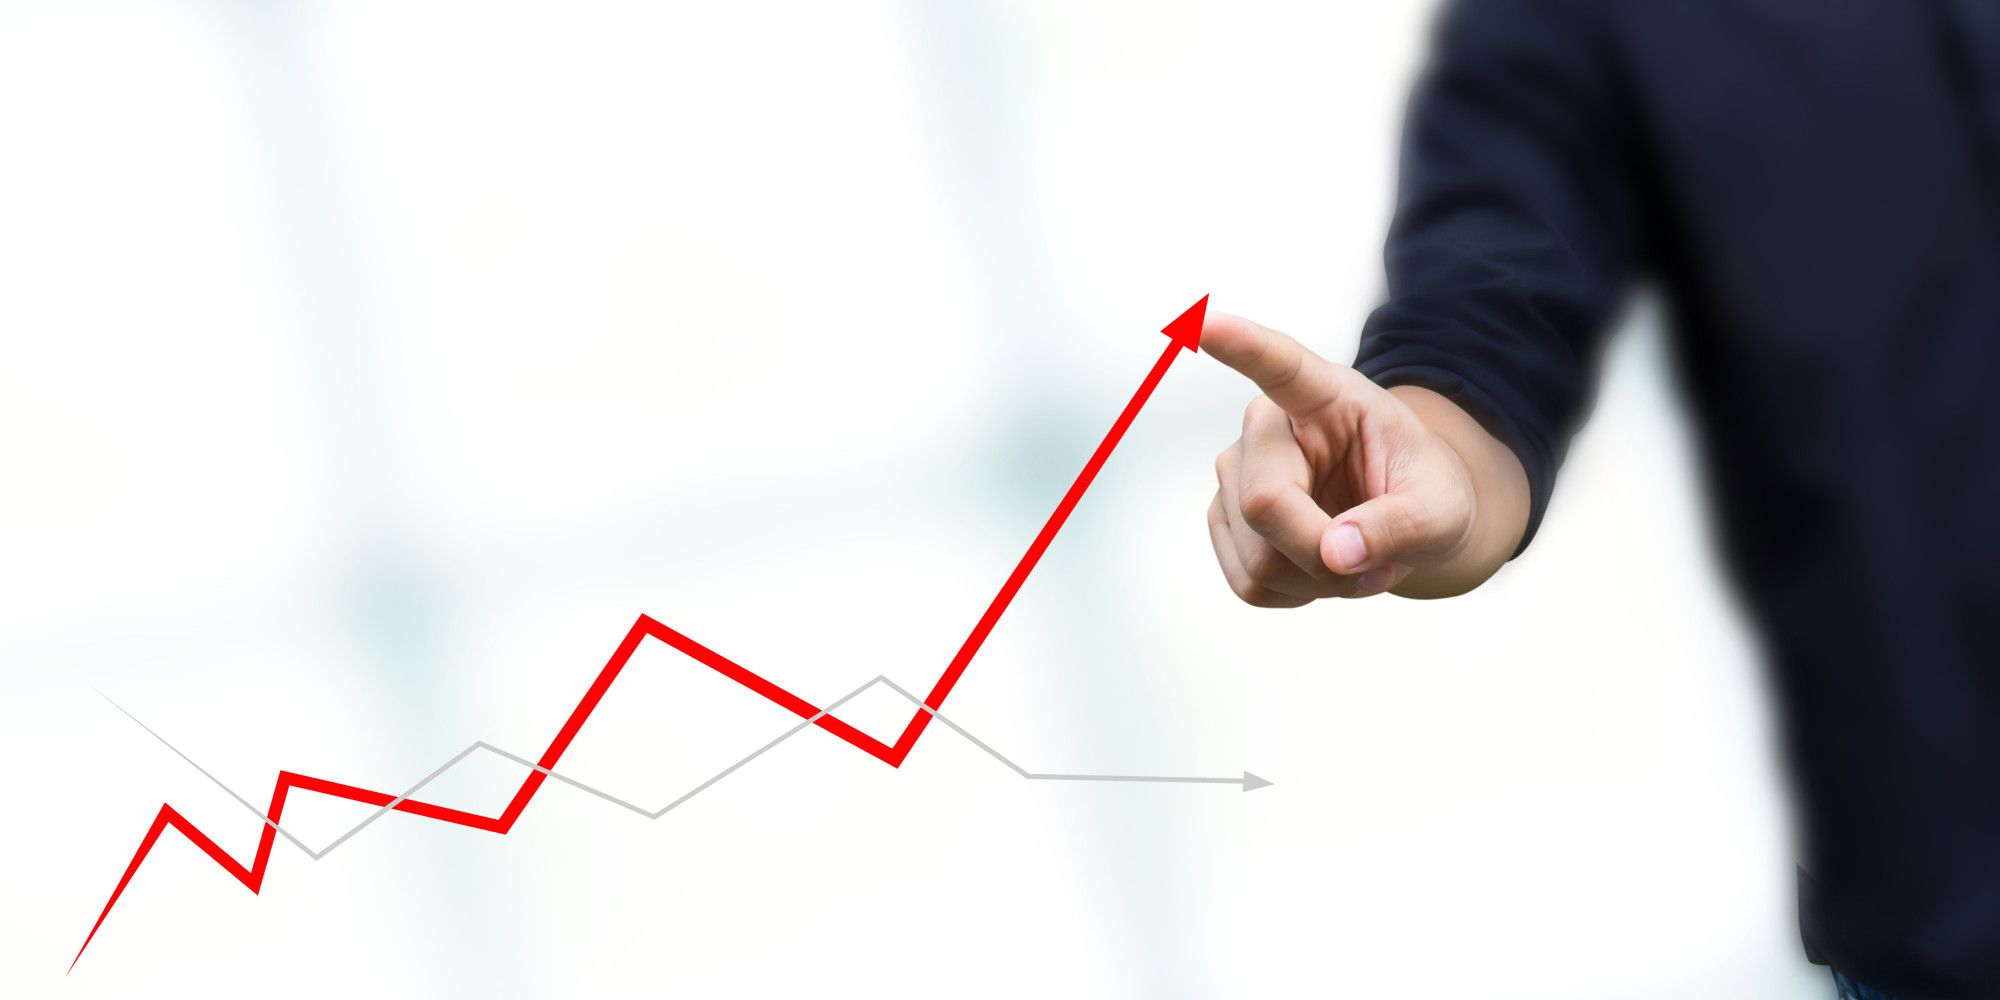 romania s economic growth accelerates to 8 8 pct in q3 says ins